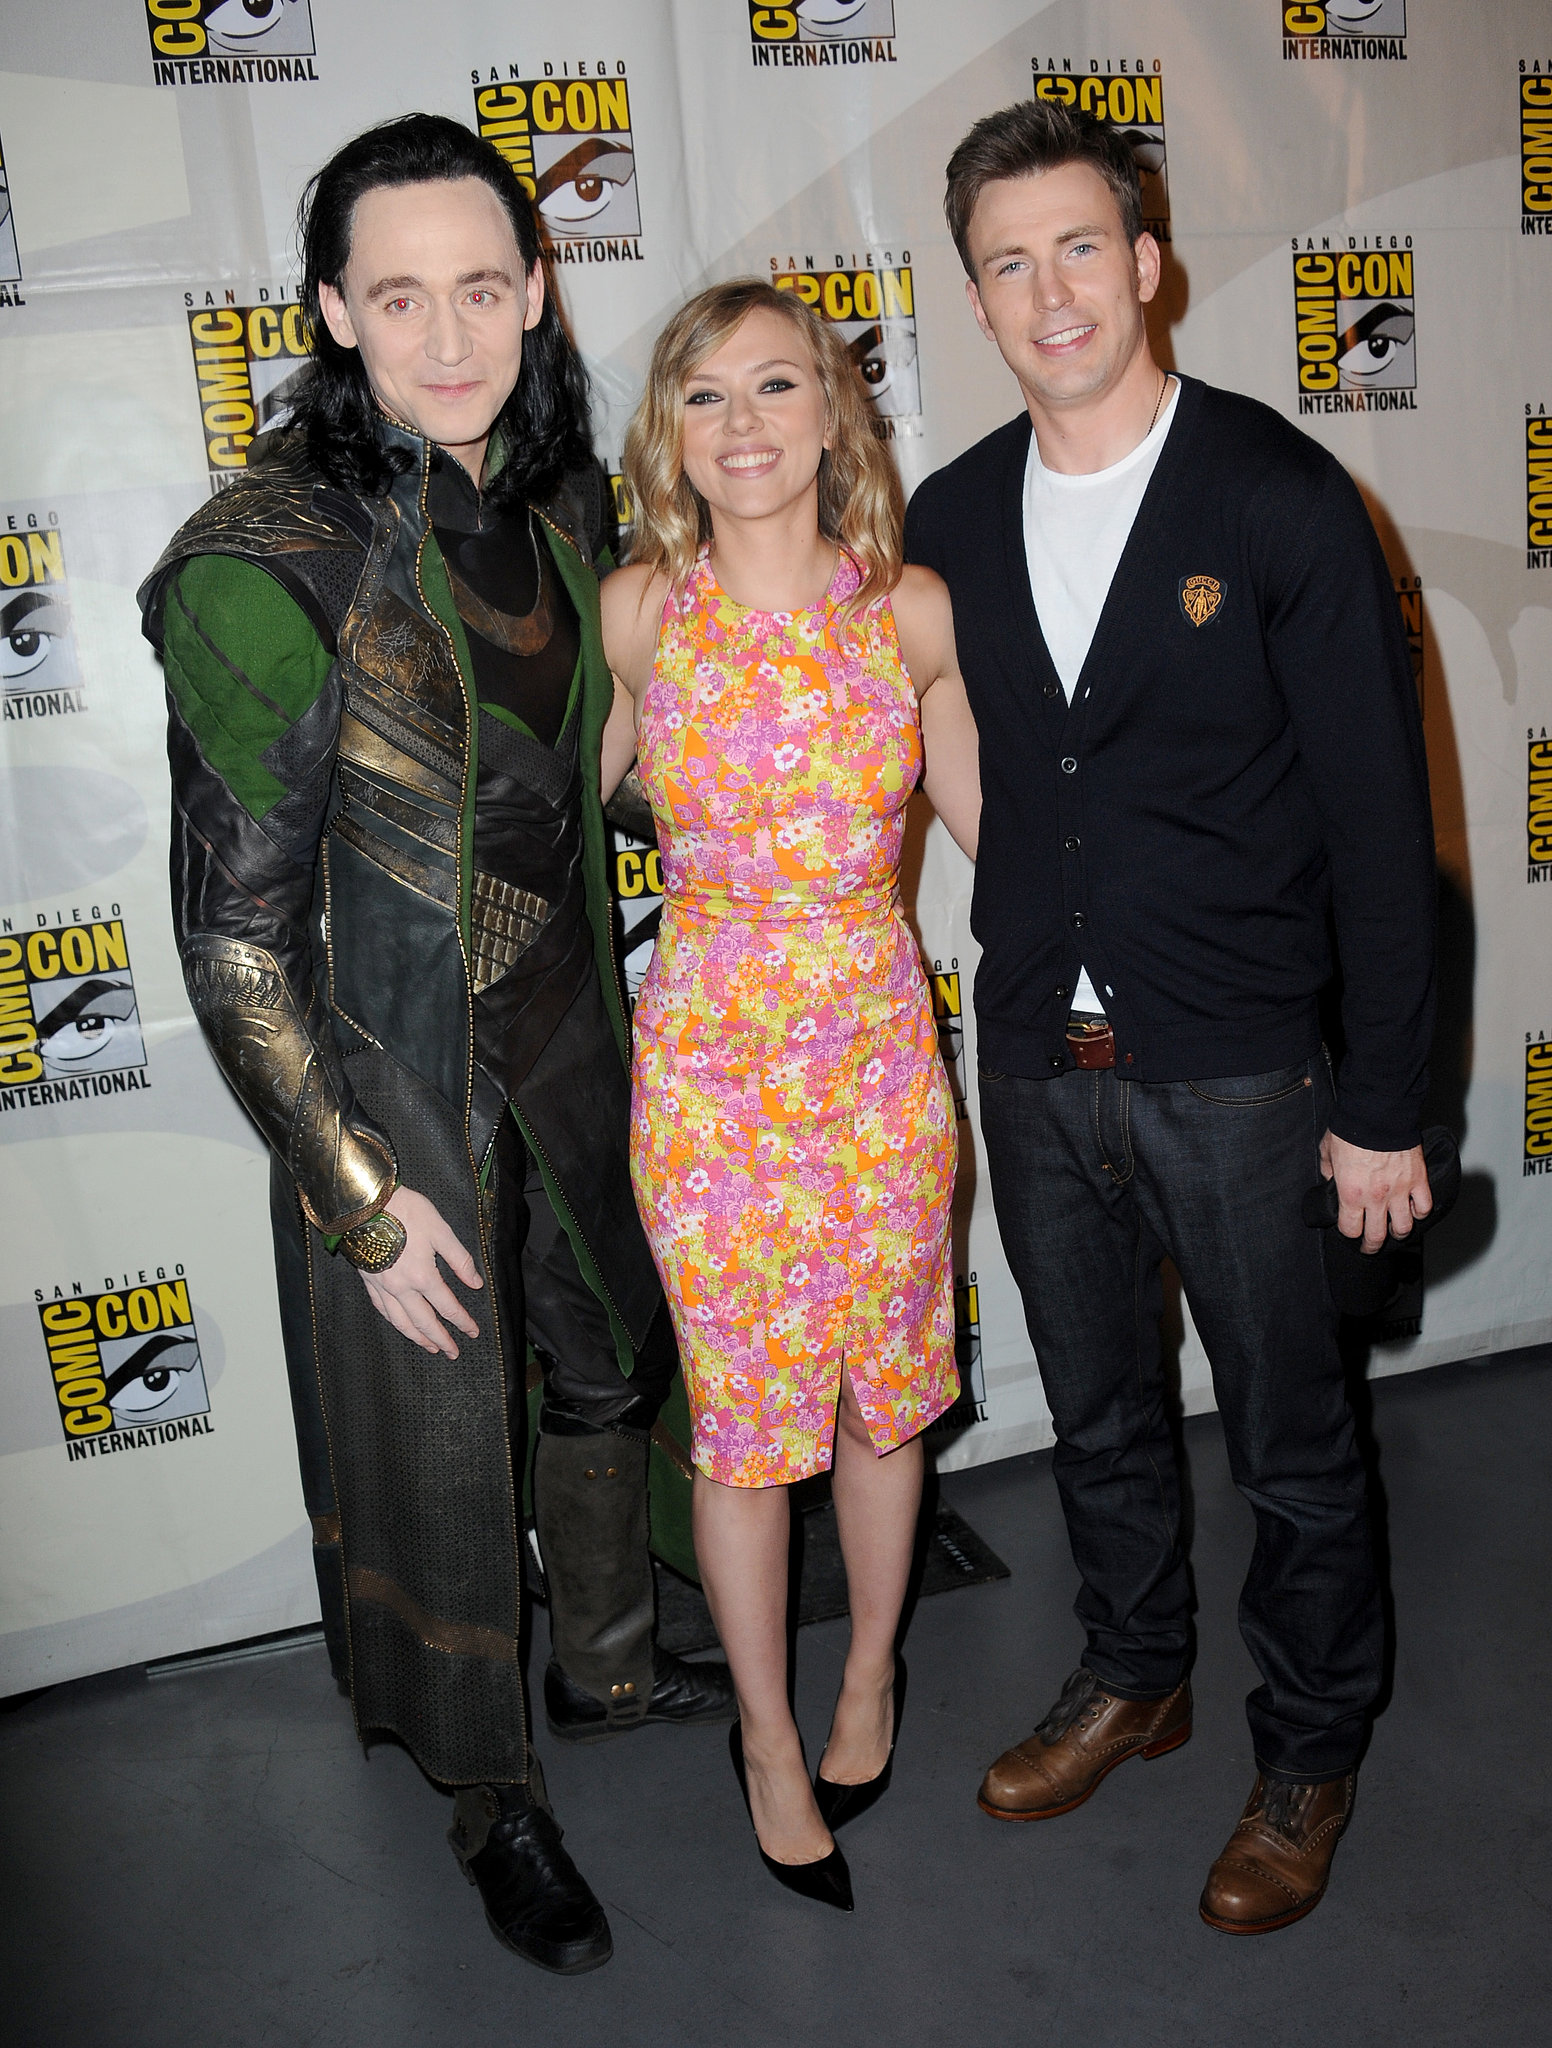 Scarlett Johansson had the pleasure of posing with her Captain America: The Winter Soldier costar Chris Evans as well as Thor: The Dark World's Tom Hiddleston — dressed as his character, Loki — at the Marvel panel in 2013.